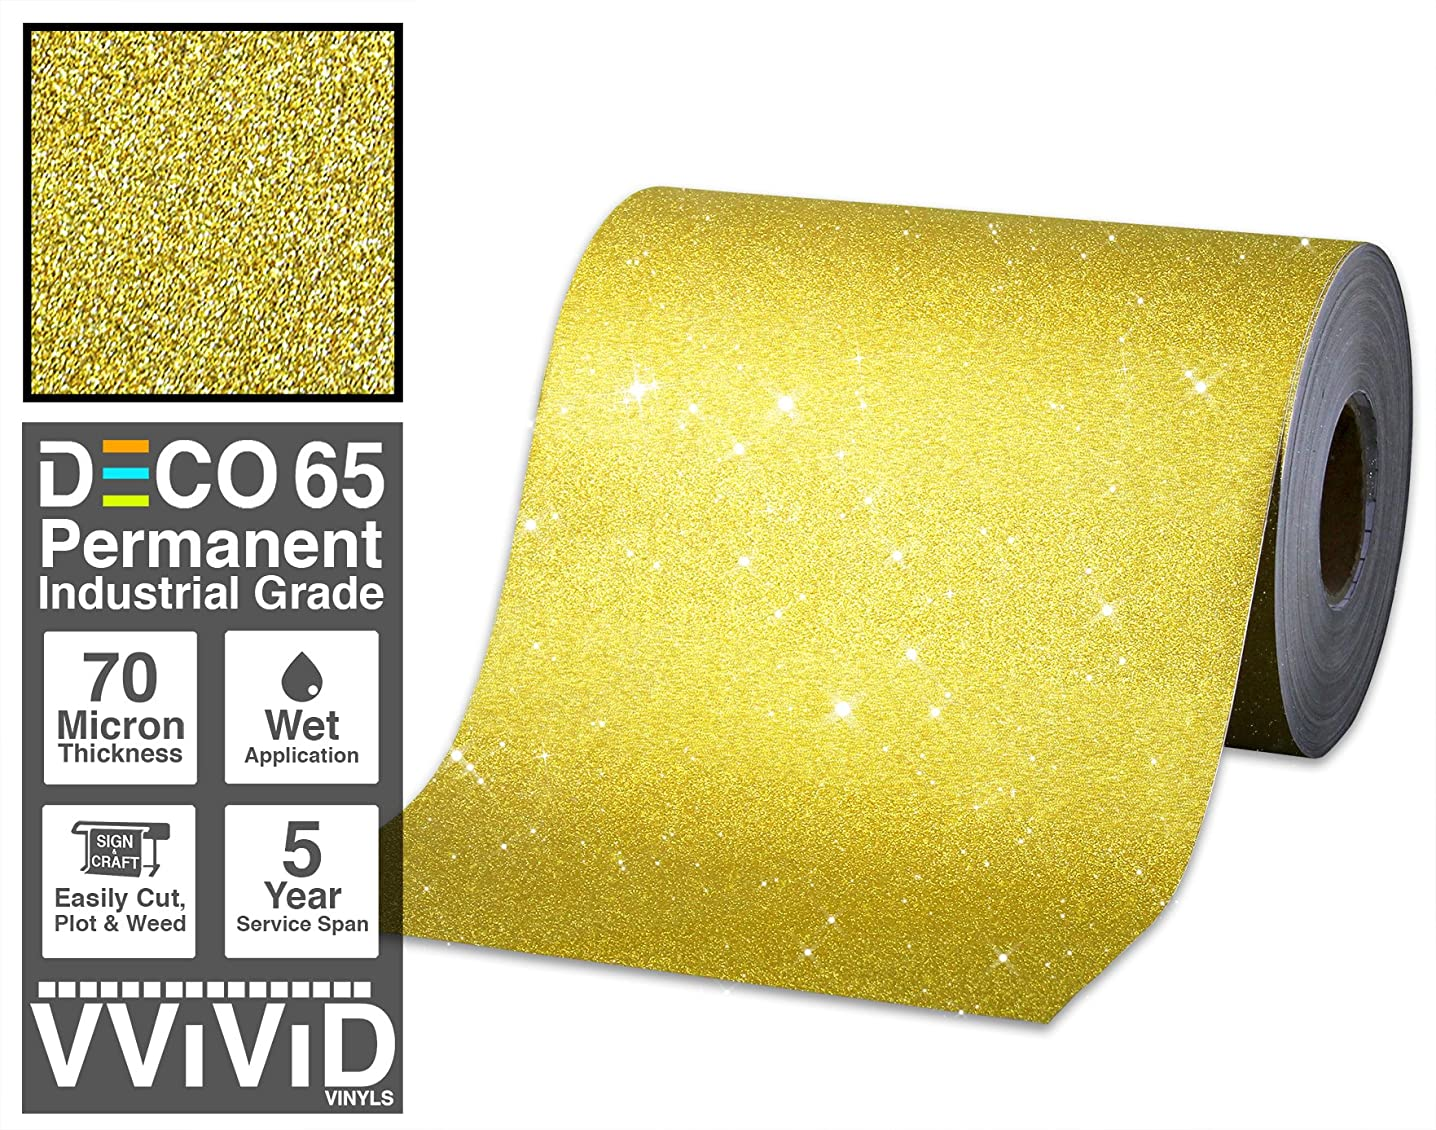 VViViD Glitter Gold DECO65 Permanent Adhesive Craft Vinyl Roll for Cricut, Silhouette & Cameo (6ft x 1ft)